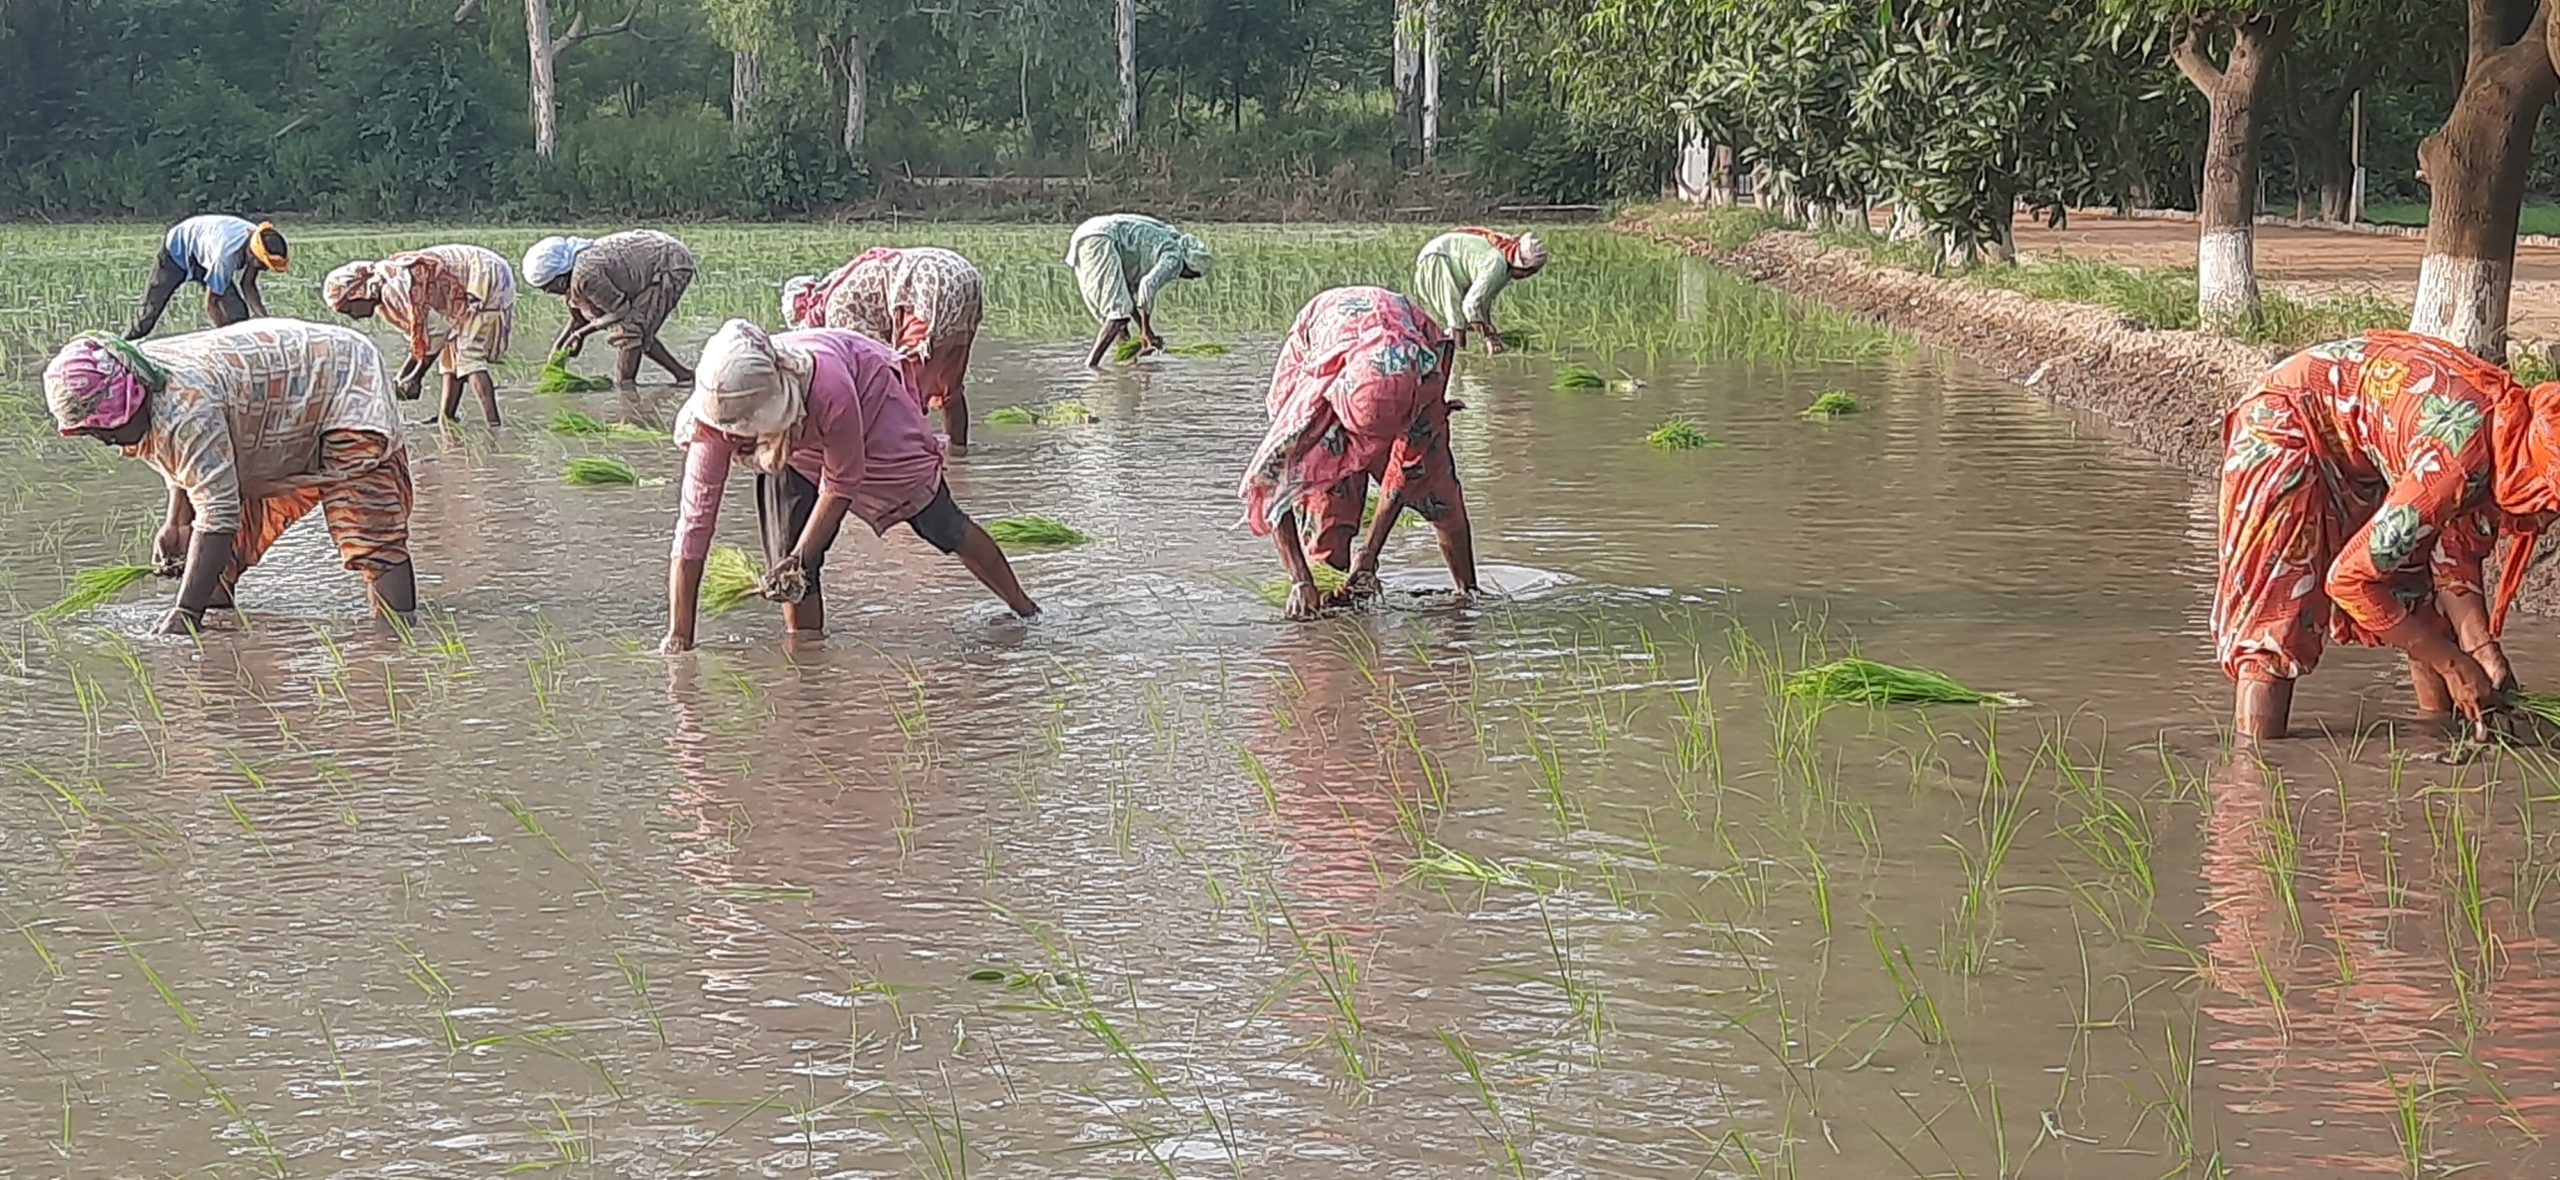 Planting of paddy seedlings in Patiala